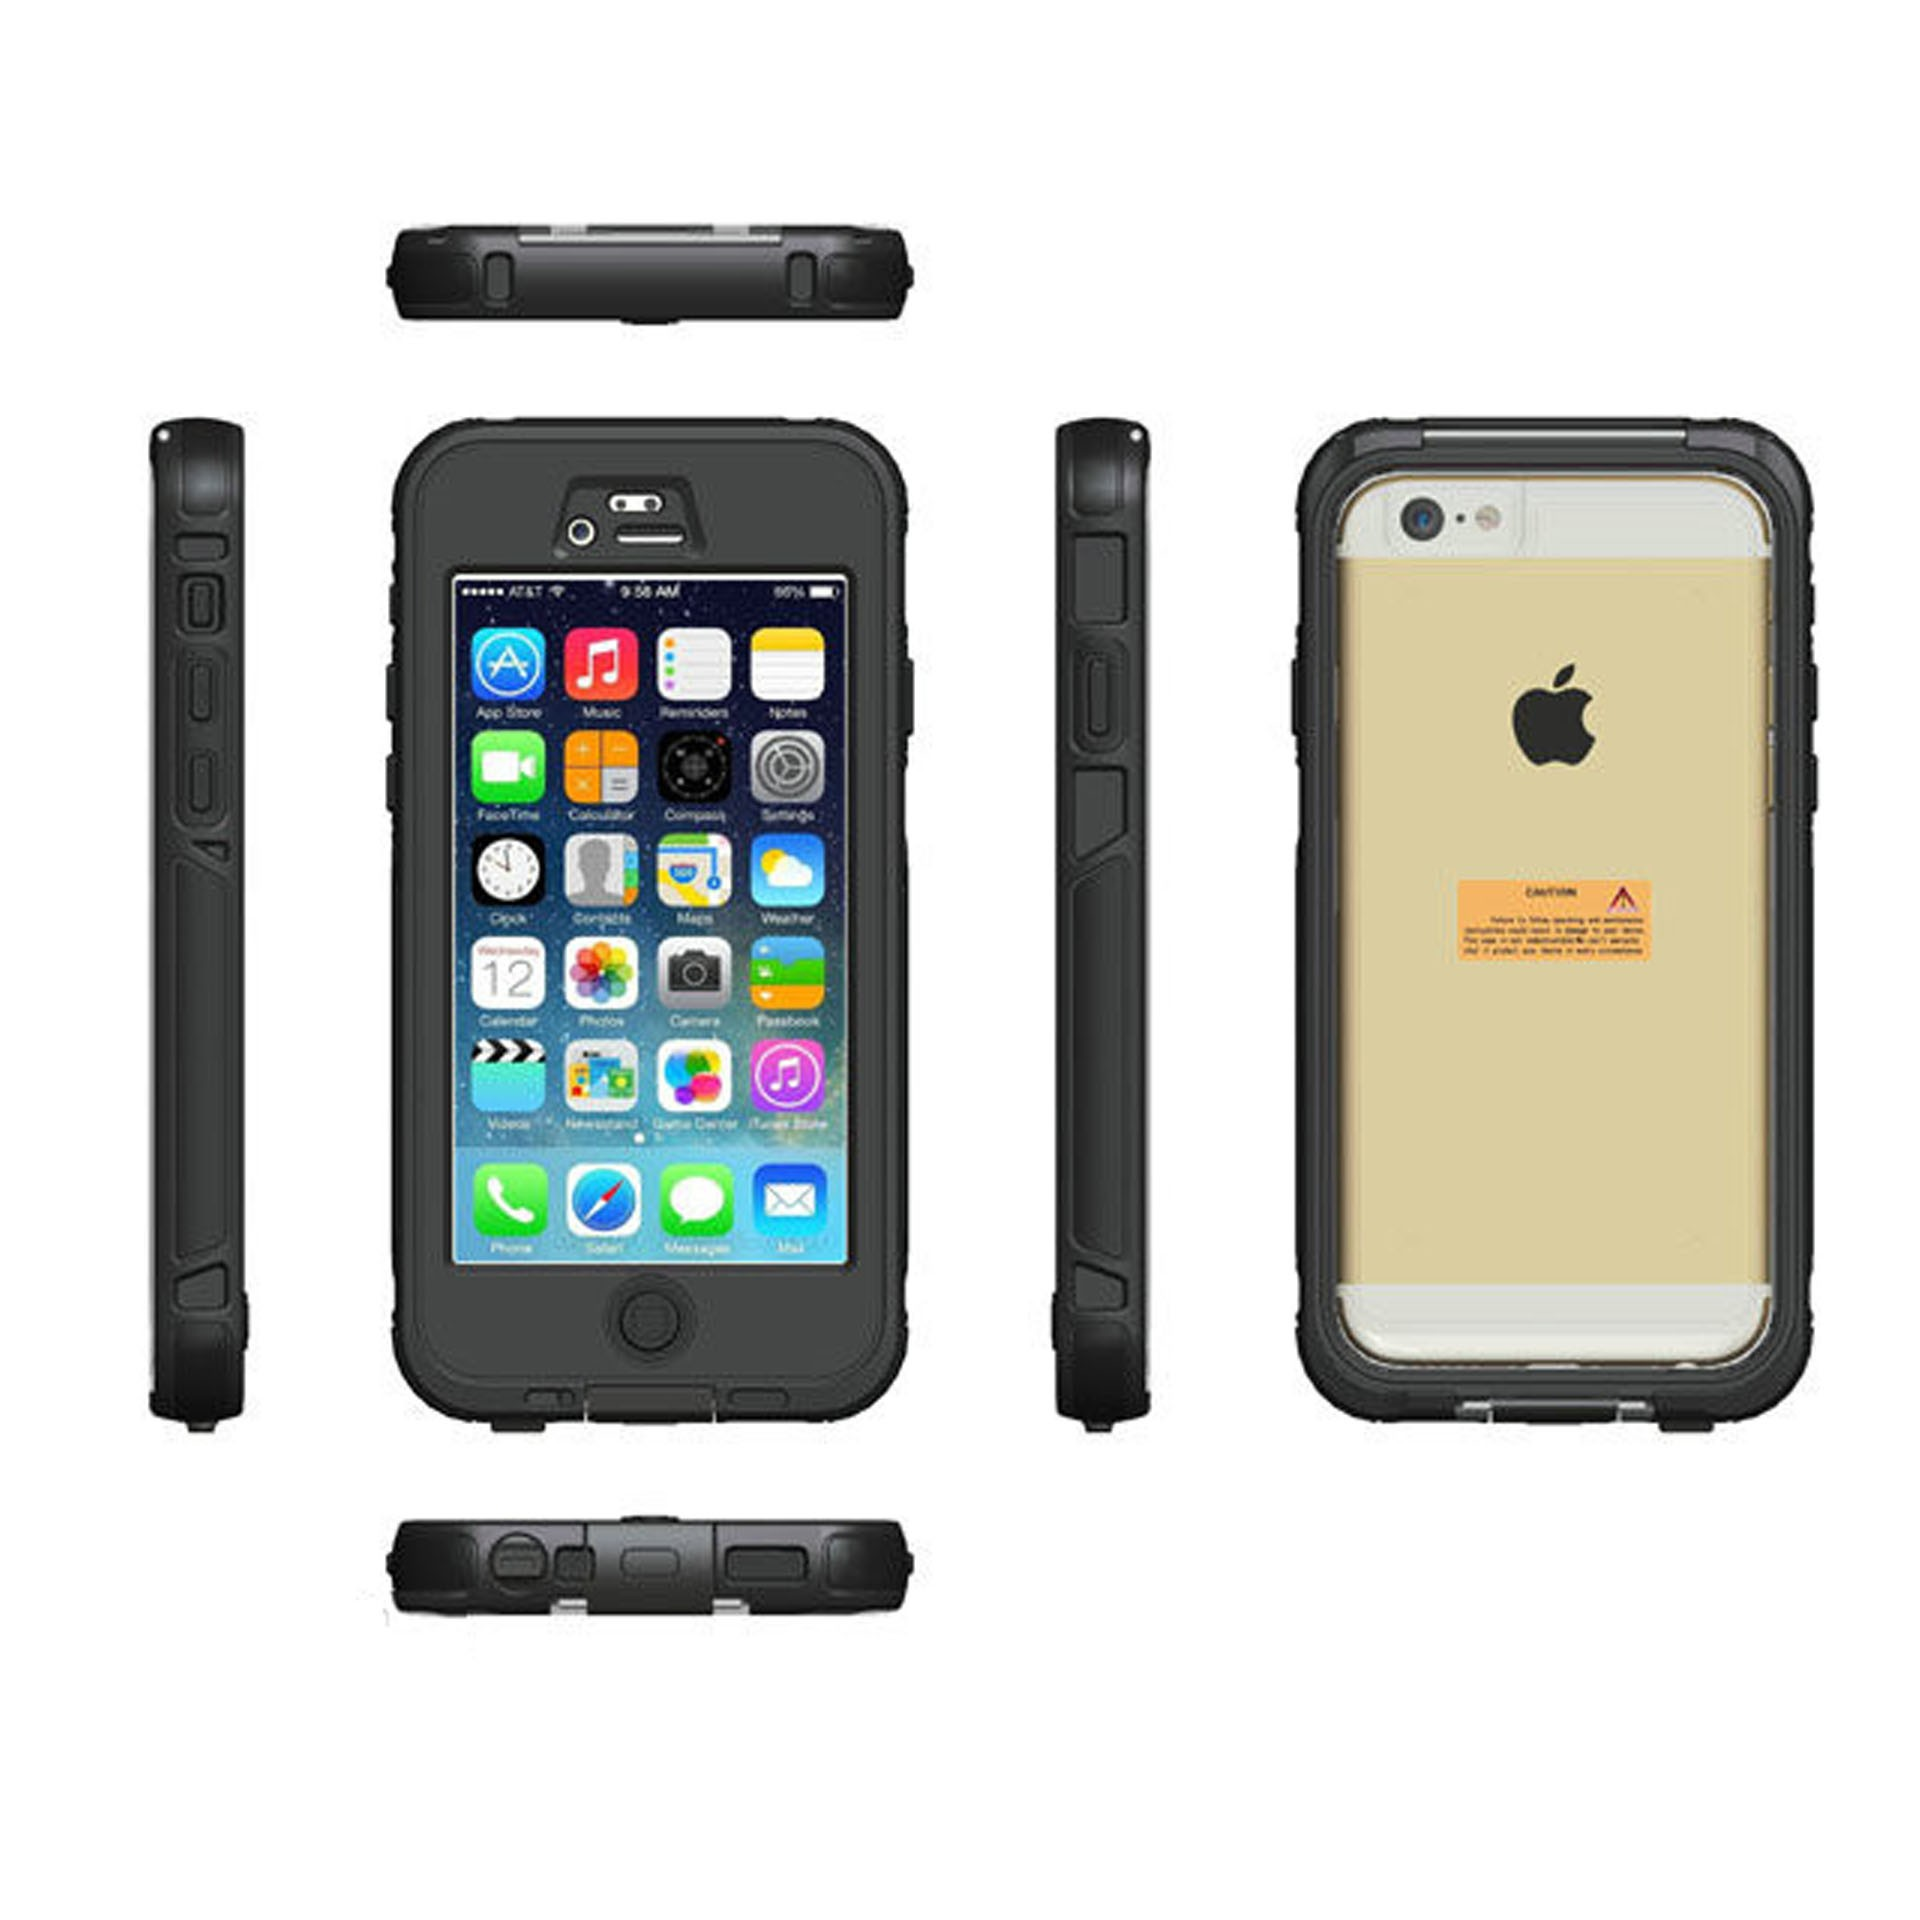 Yemota Pro Waterproof 3m Case iPhone 6 / 6S - Schwarz